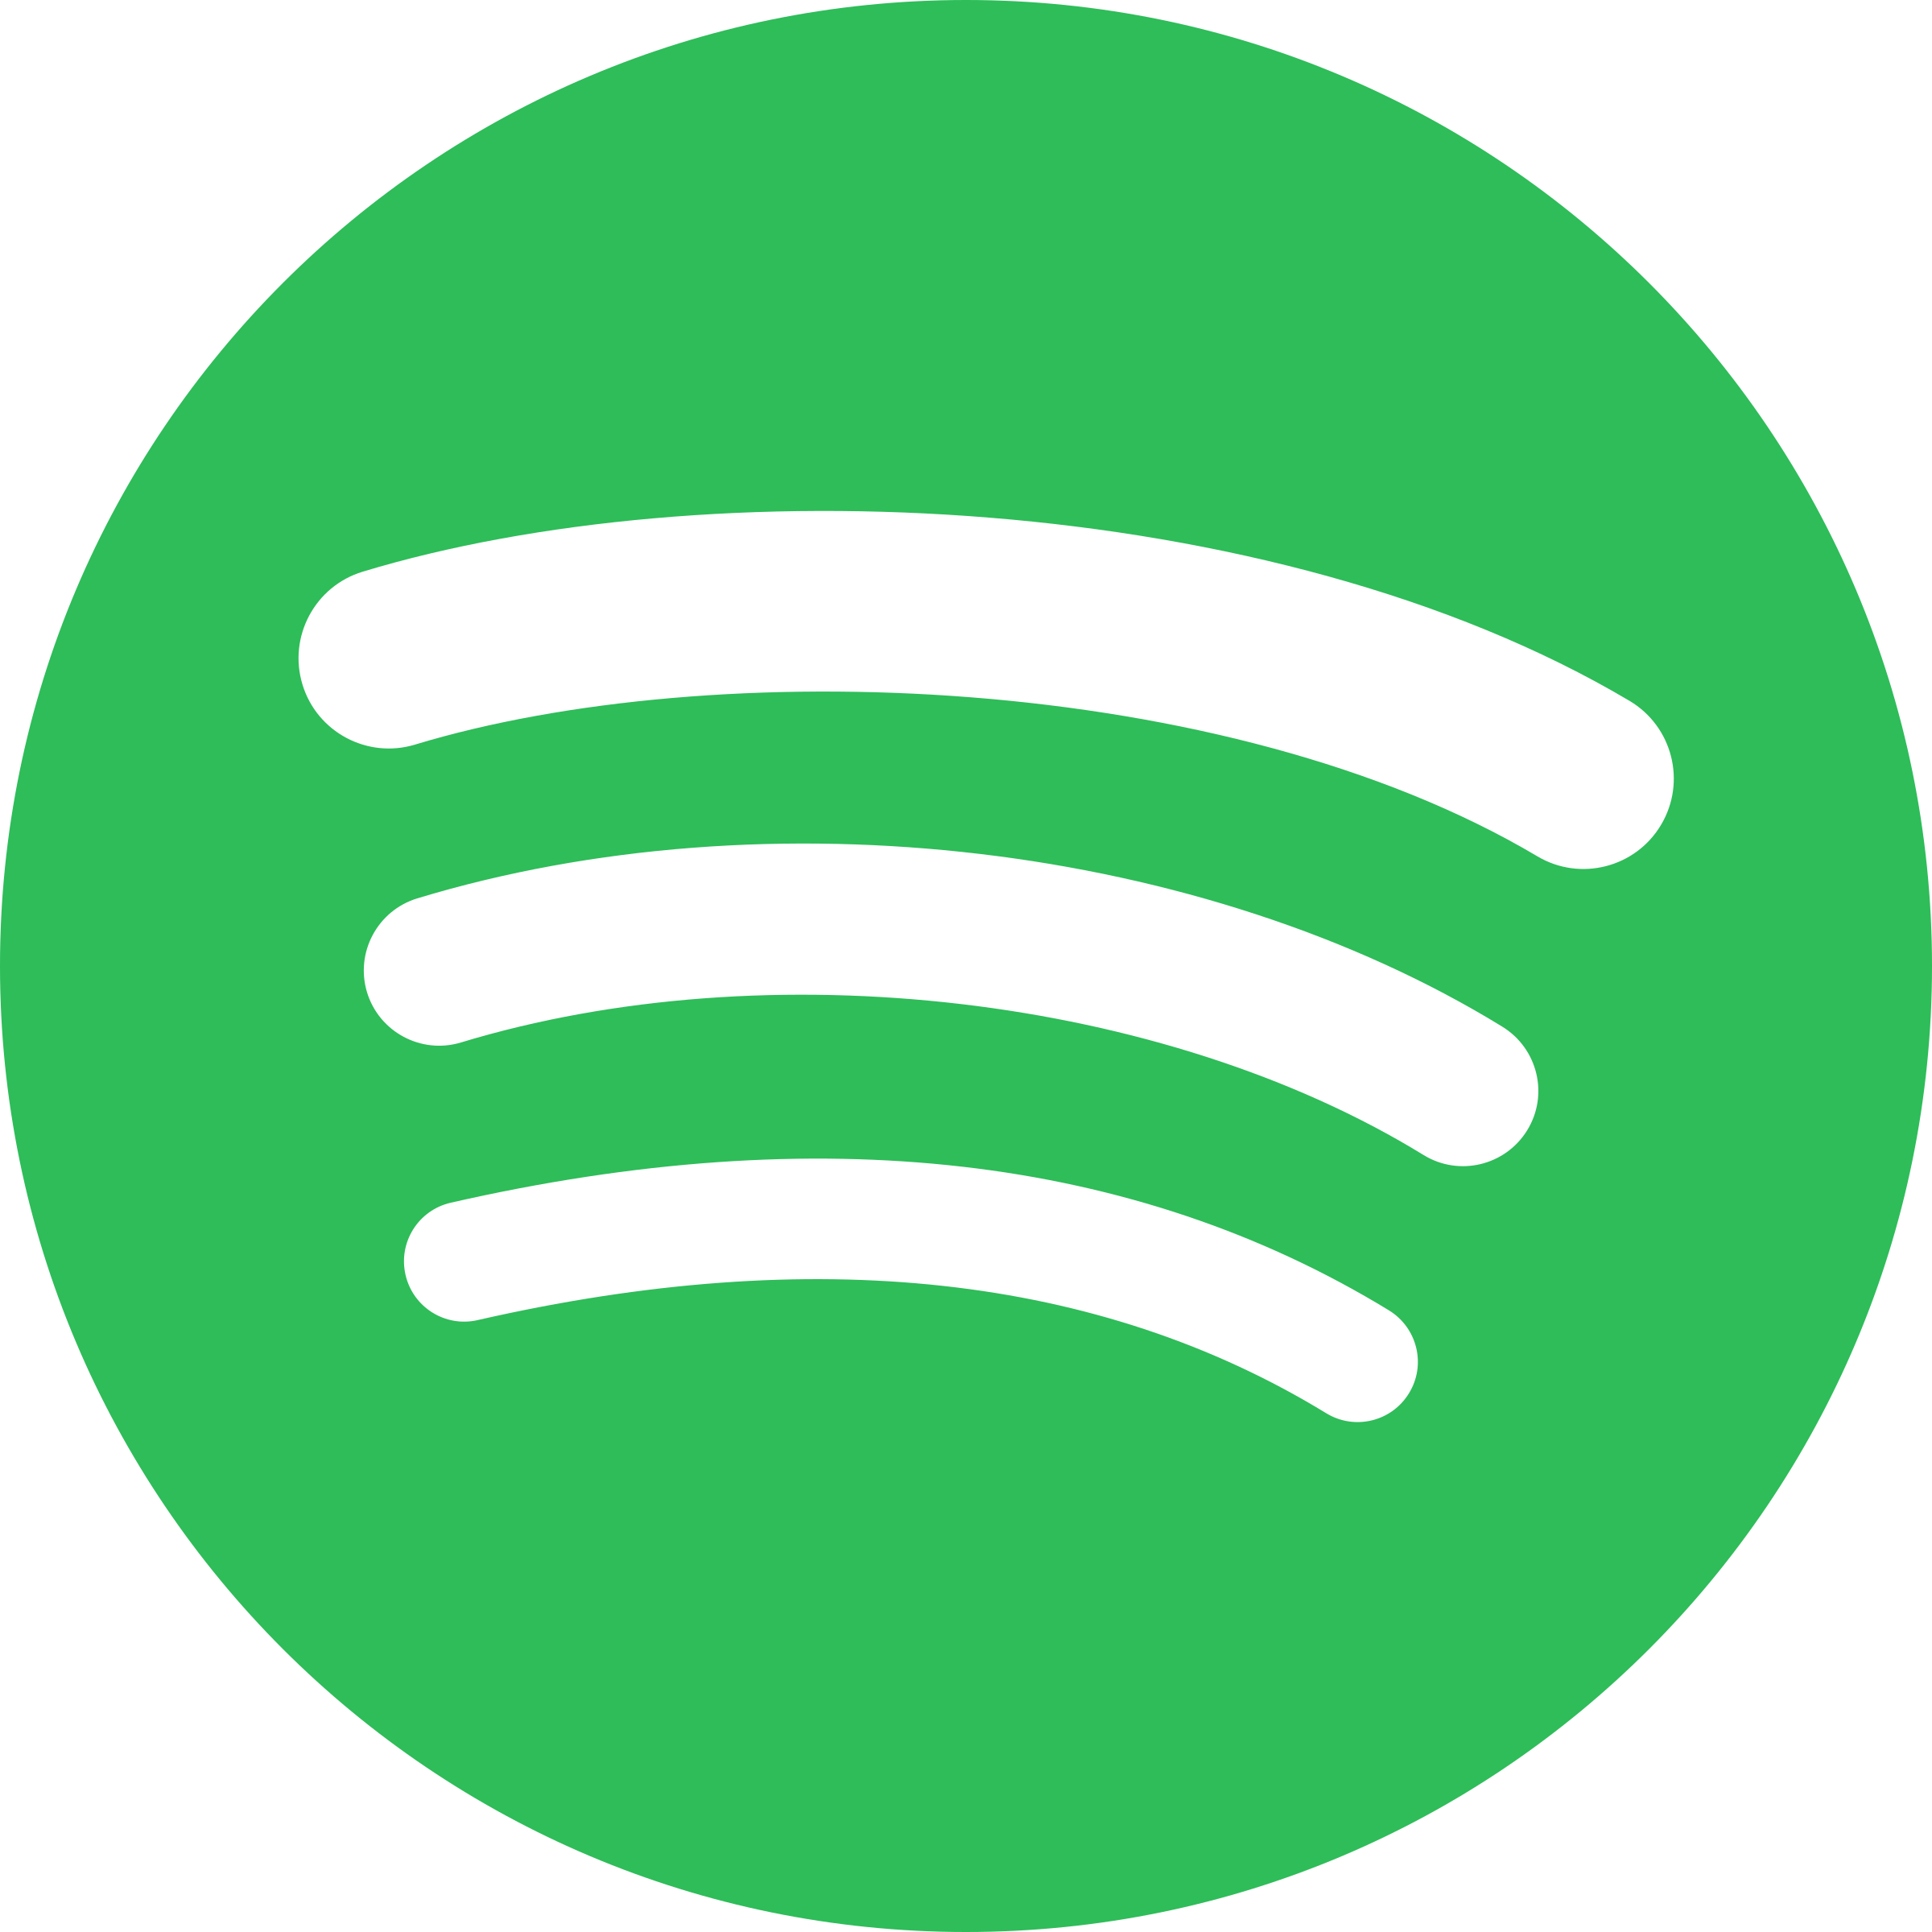 Spotify logo black png. Transparent svg vector freebie